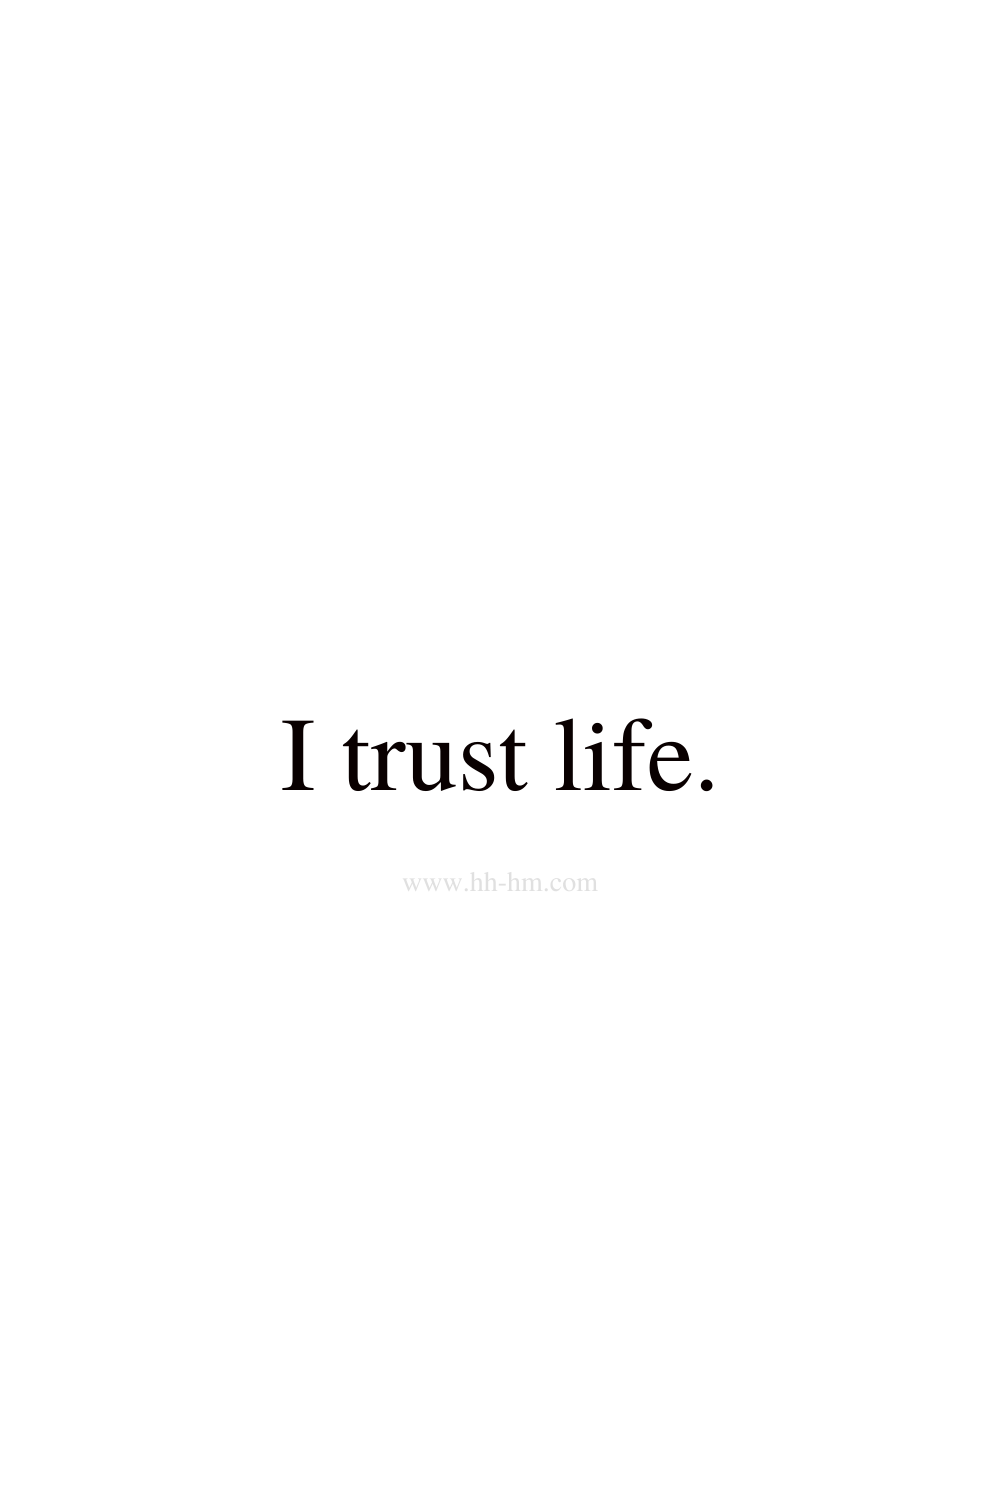 I trust life - I am excited about today - short positive affirmations for happiness